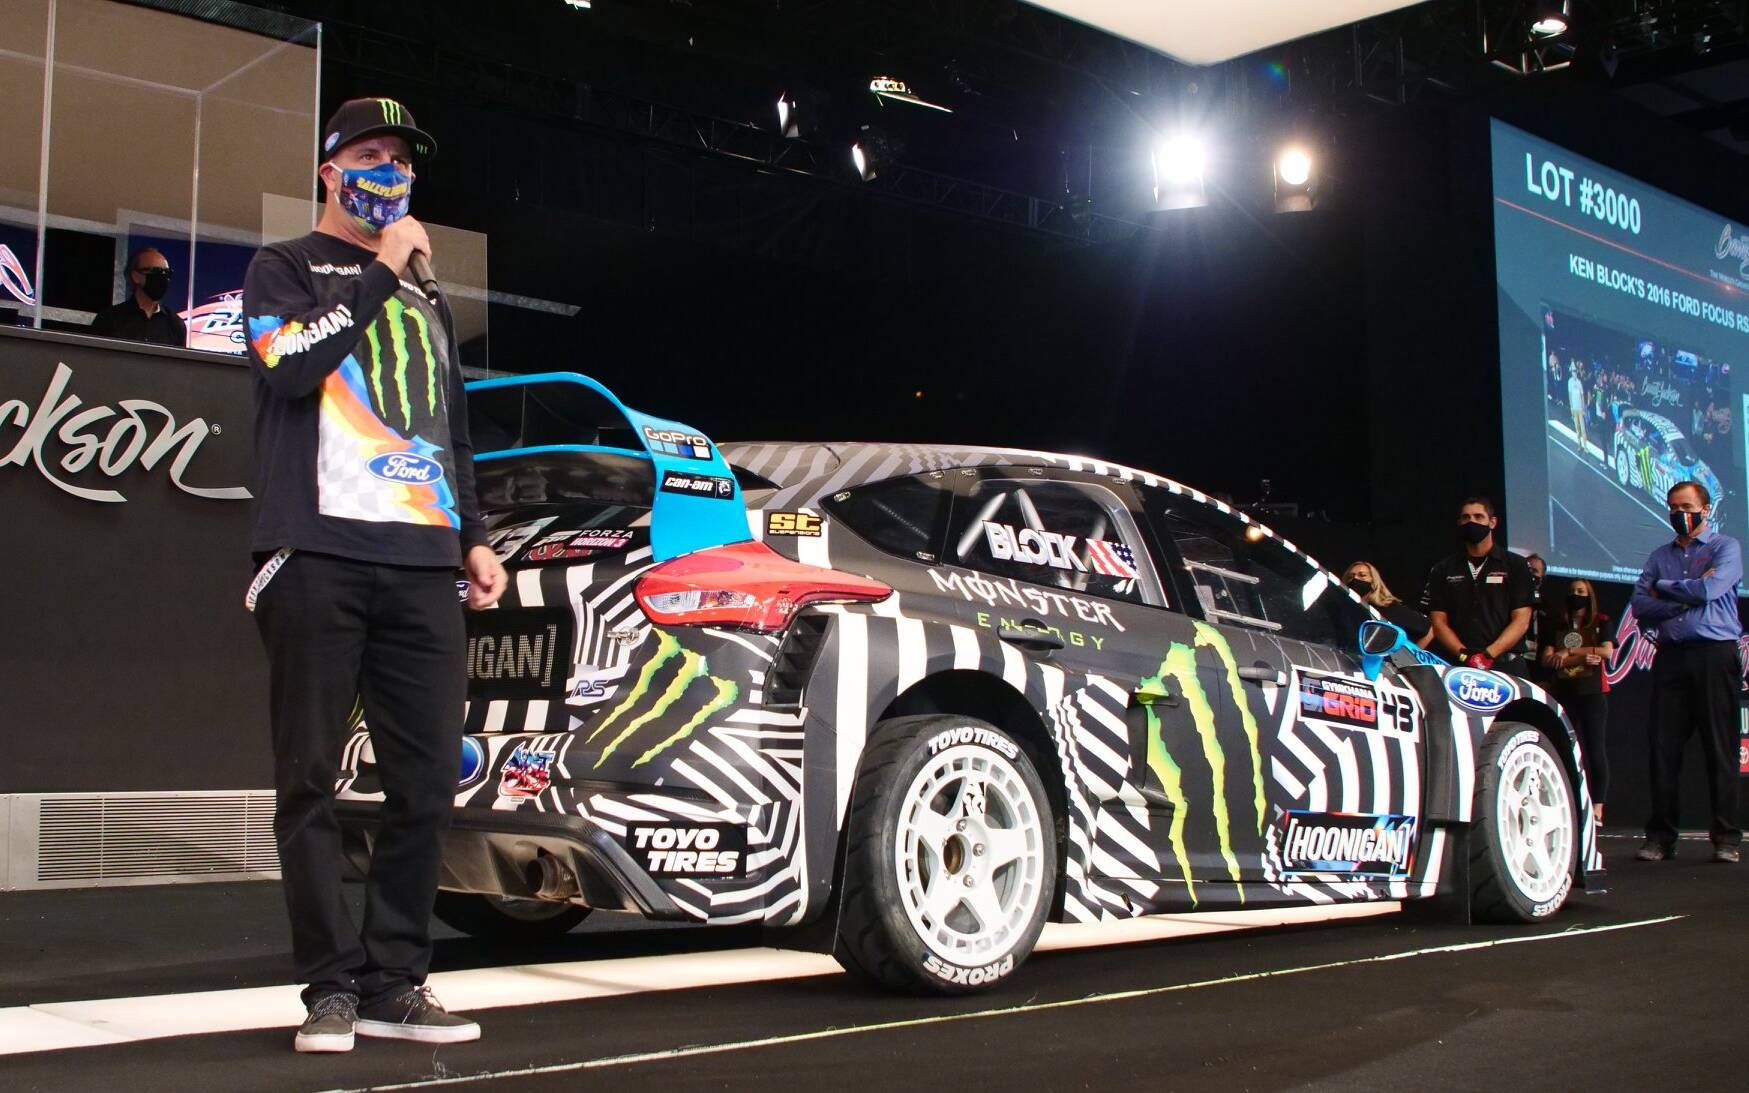 Ken Block S 2016 Ford Focus Rs Rx Sold For 264 000 The Car Guide